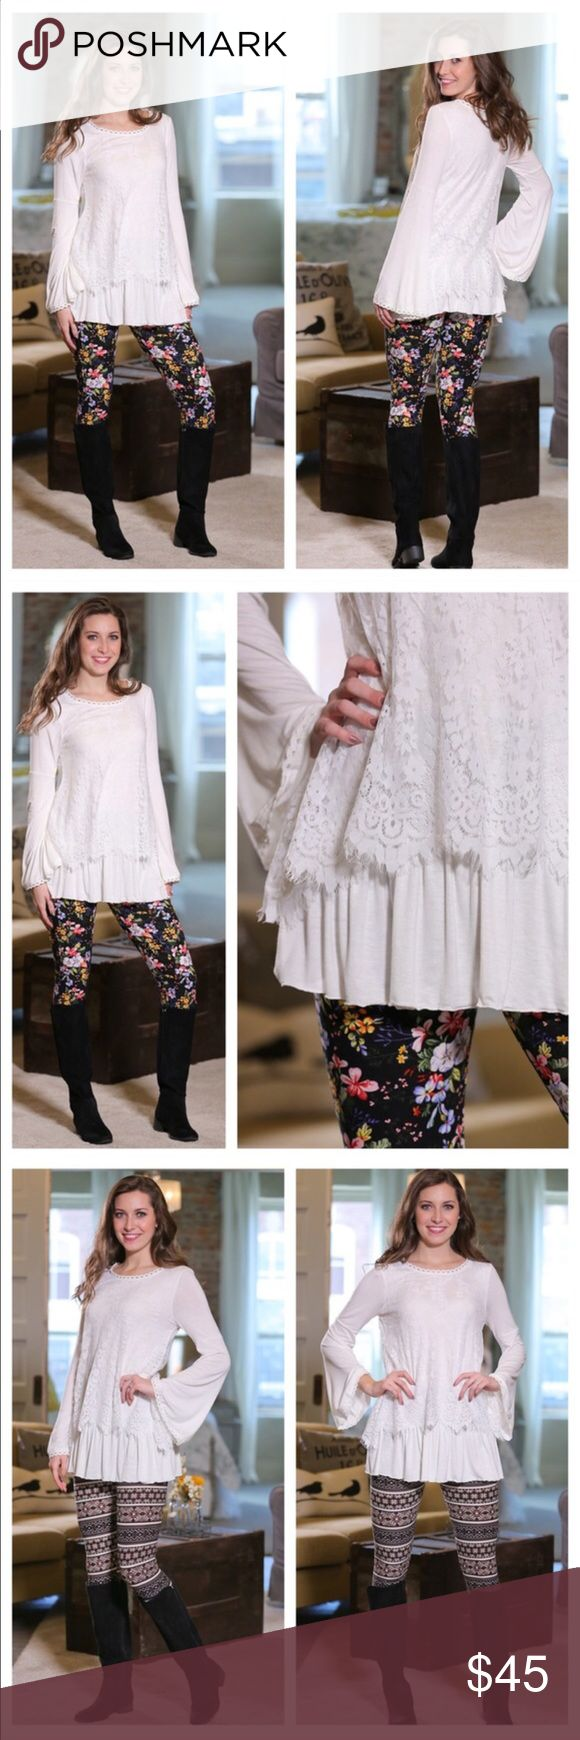 White Bell Sleeve Lace Tunic Gorgeous white Bell Sleeve Lace Tunic! Would look great with the new blue and white floral leggings I just posted! 95% Rayon, 5% Spandex. 20% off bundles!! Infinity Raine Tops Tunics